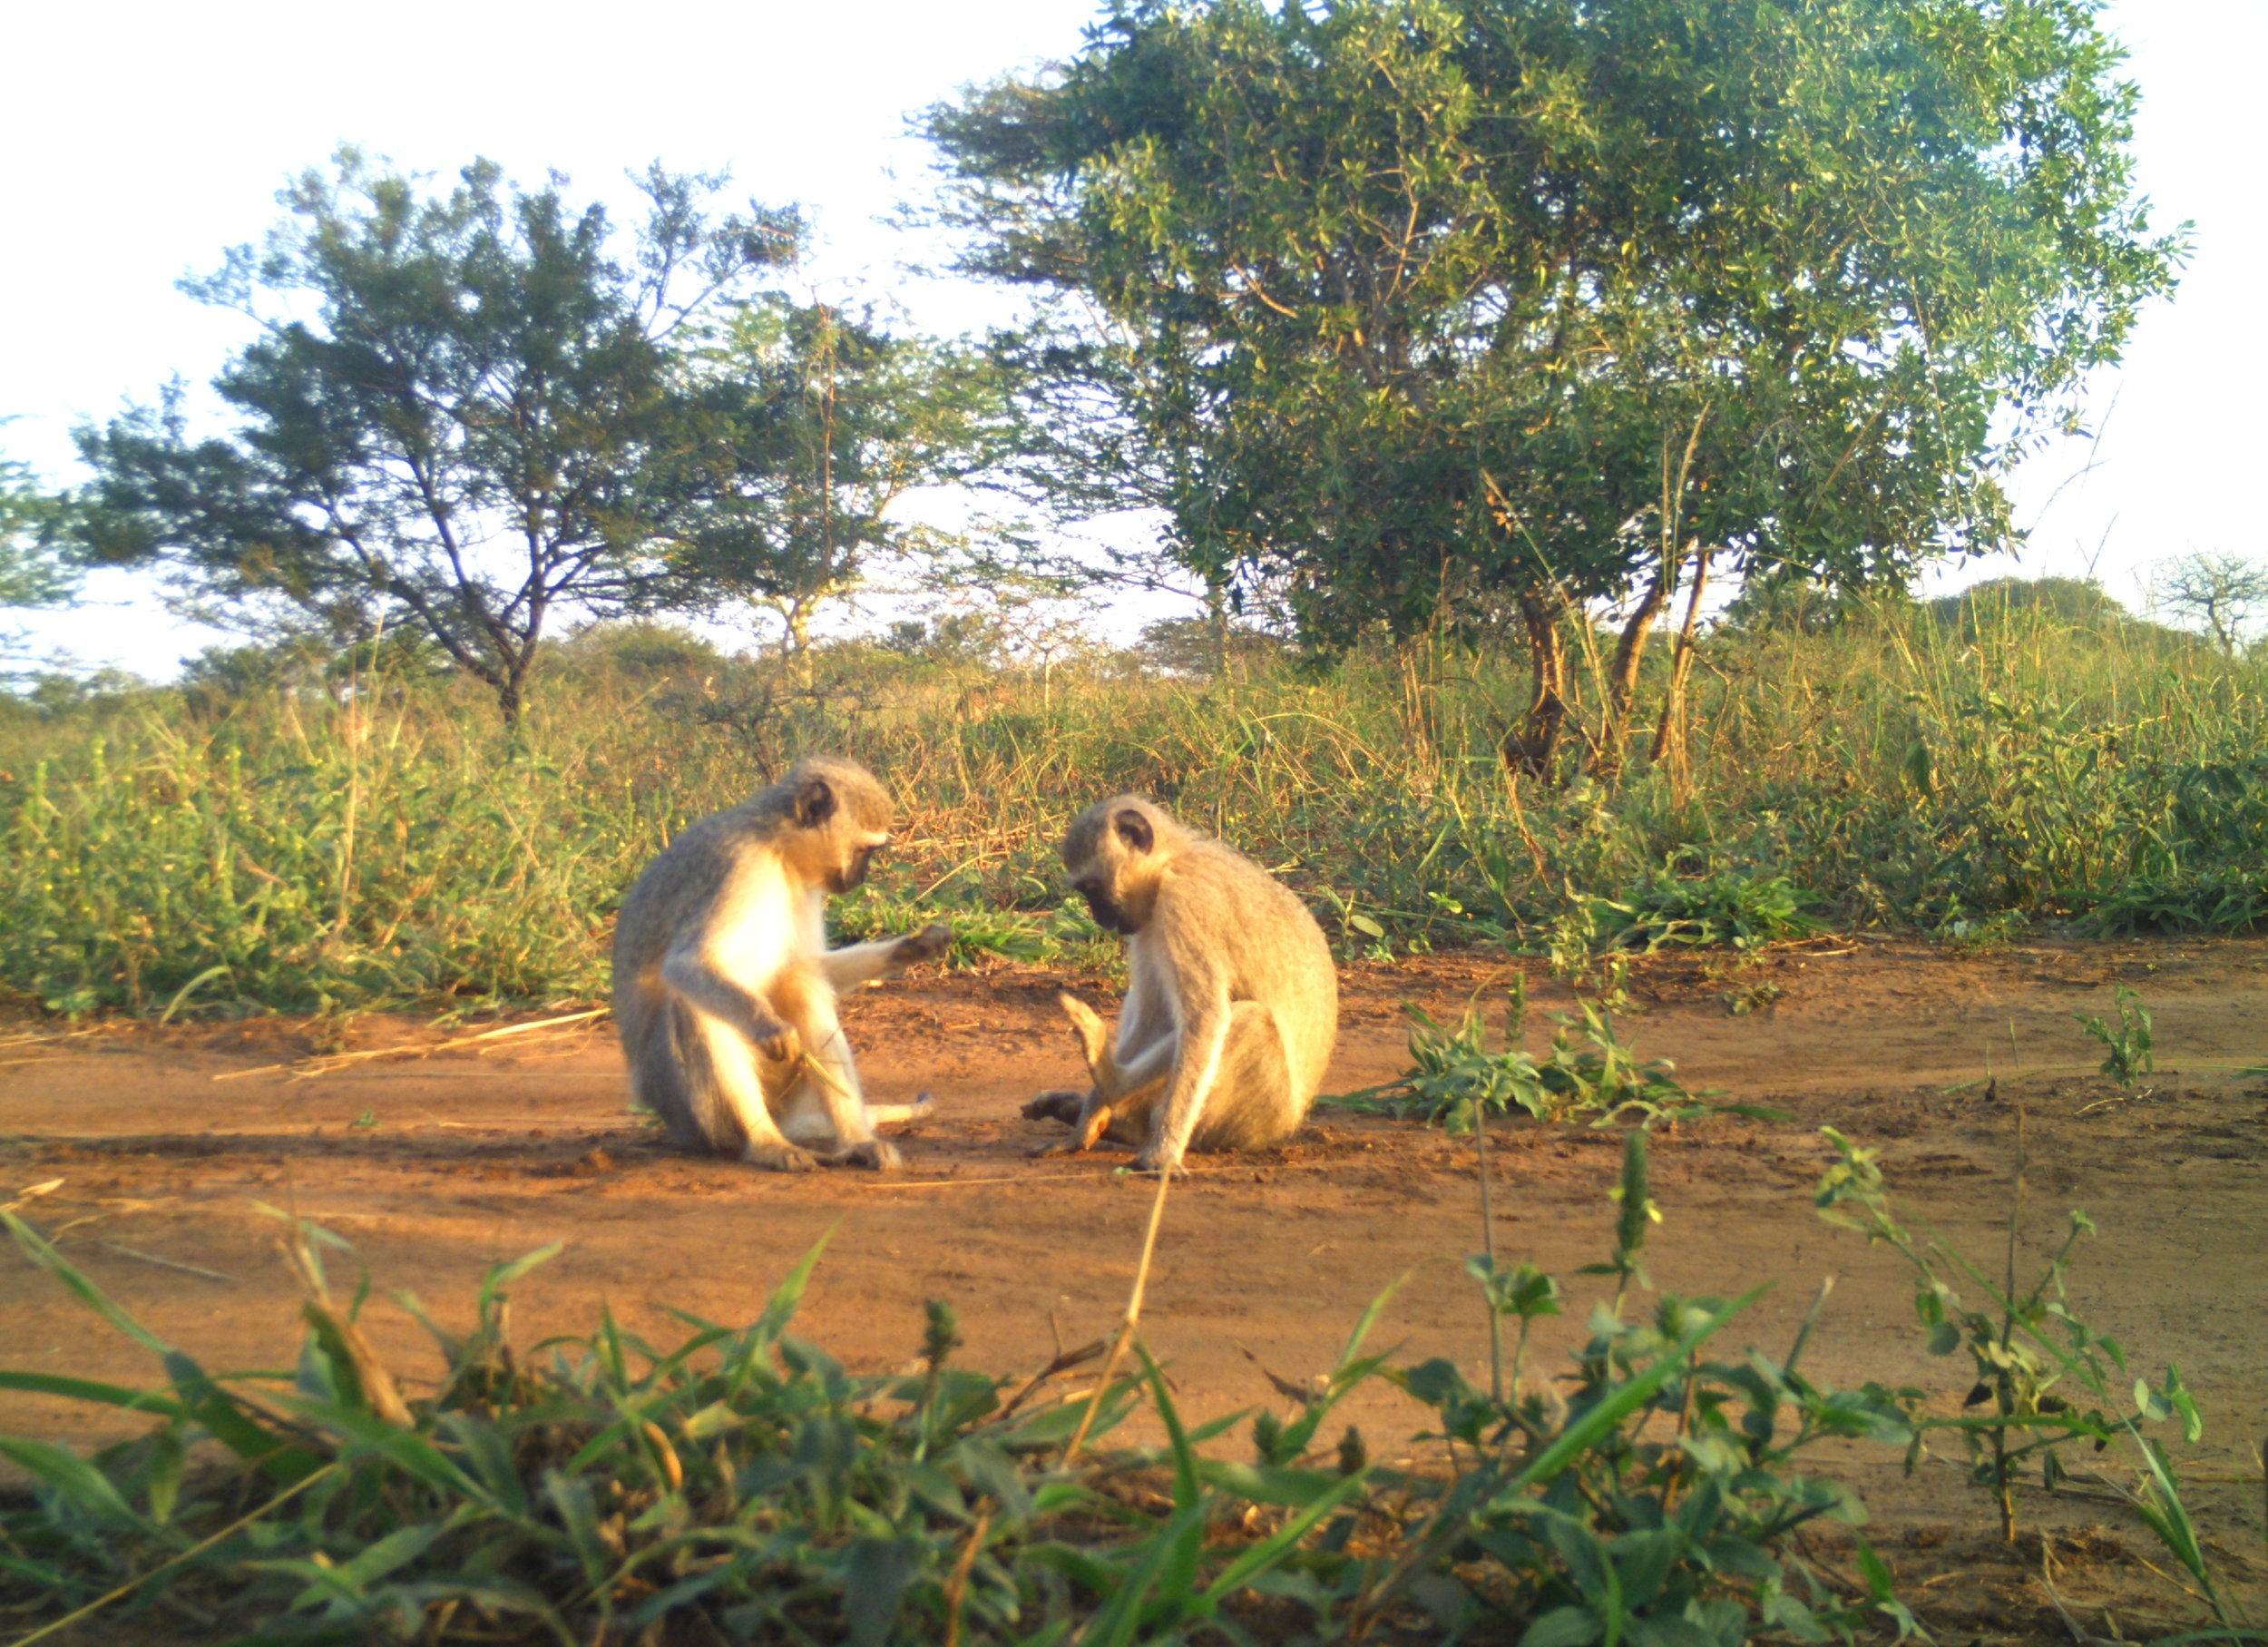 A pair of Vervet Monkeys  (Chlorocebus pygerythrus)  play in front of the camera.